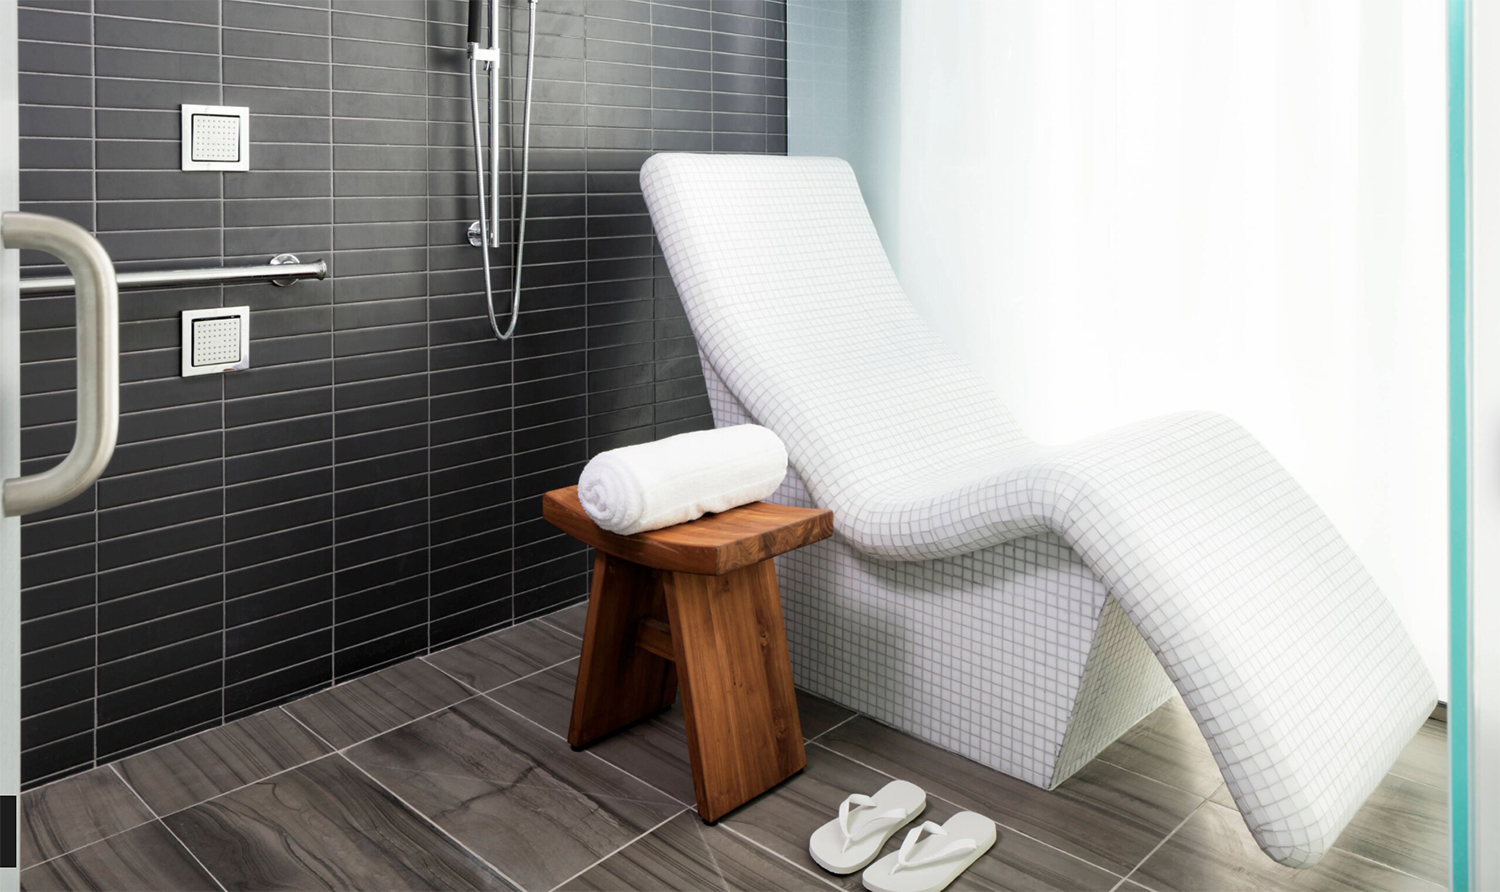 Spa Suite chaise.